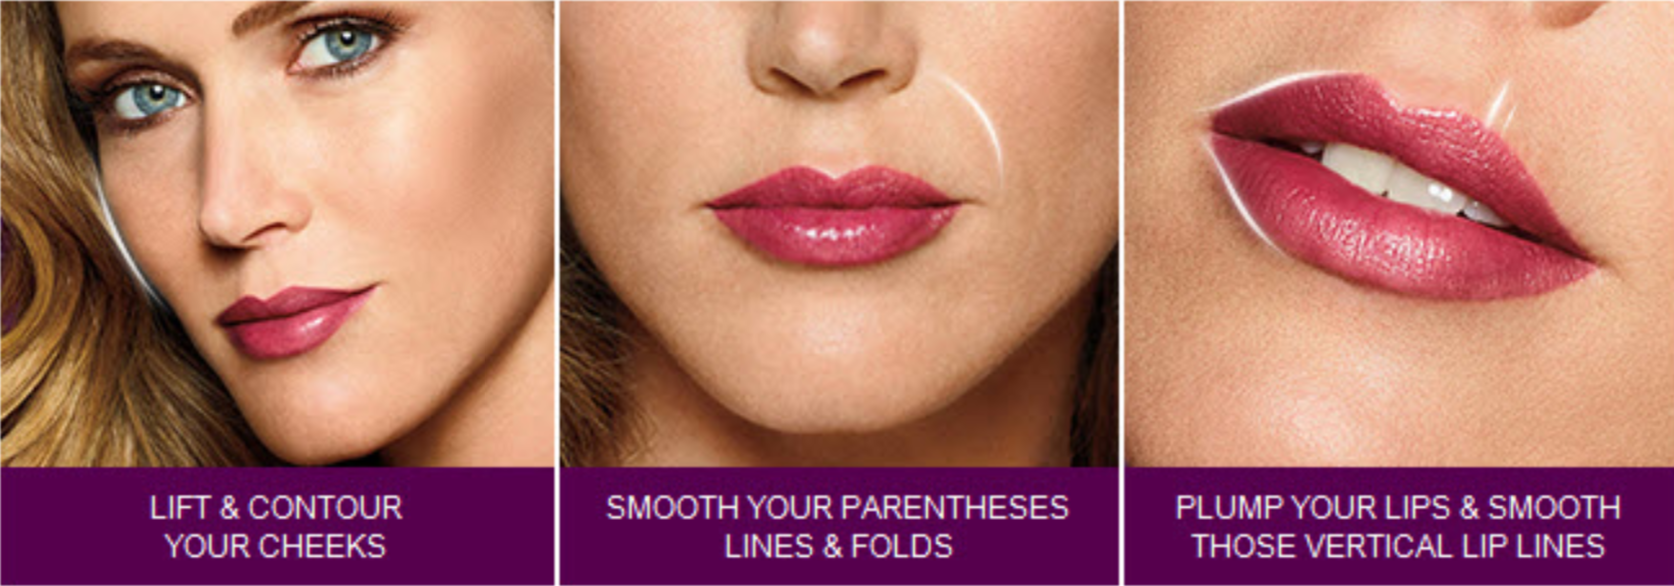 juvederm-areas.png